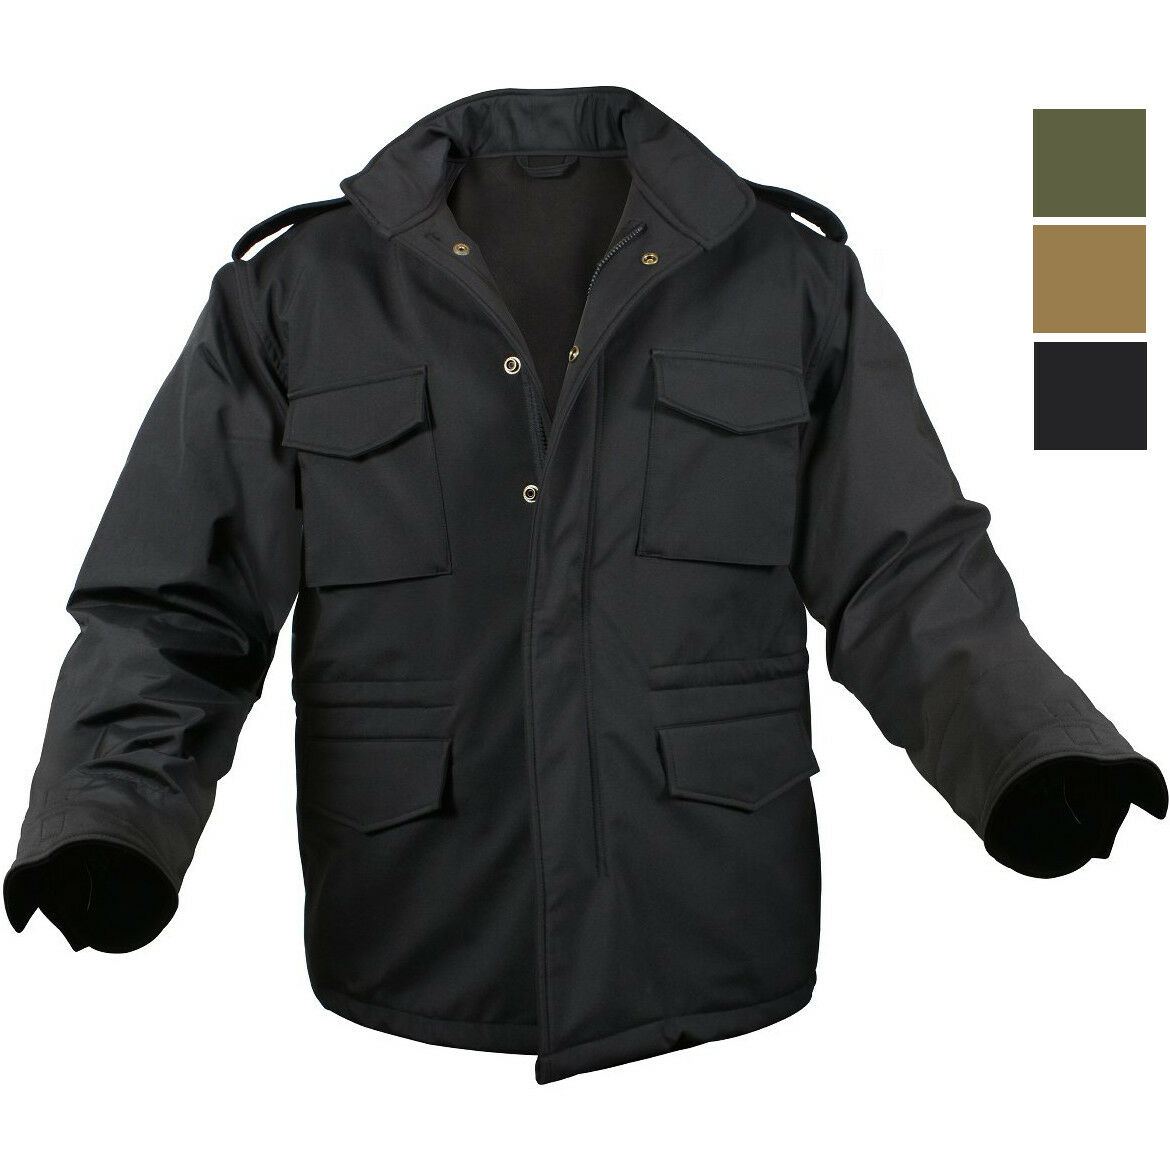 Soft Shell Waterproof Tactical Jacket Army M65 Military Light M-65 Field Coat